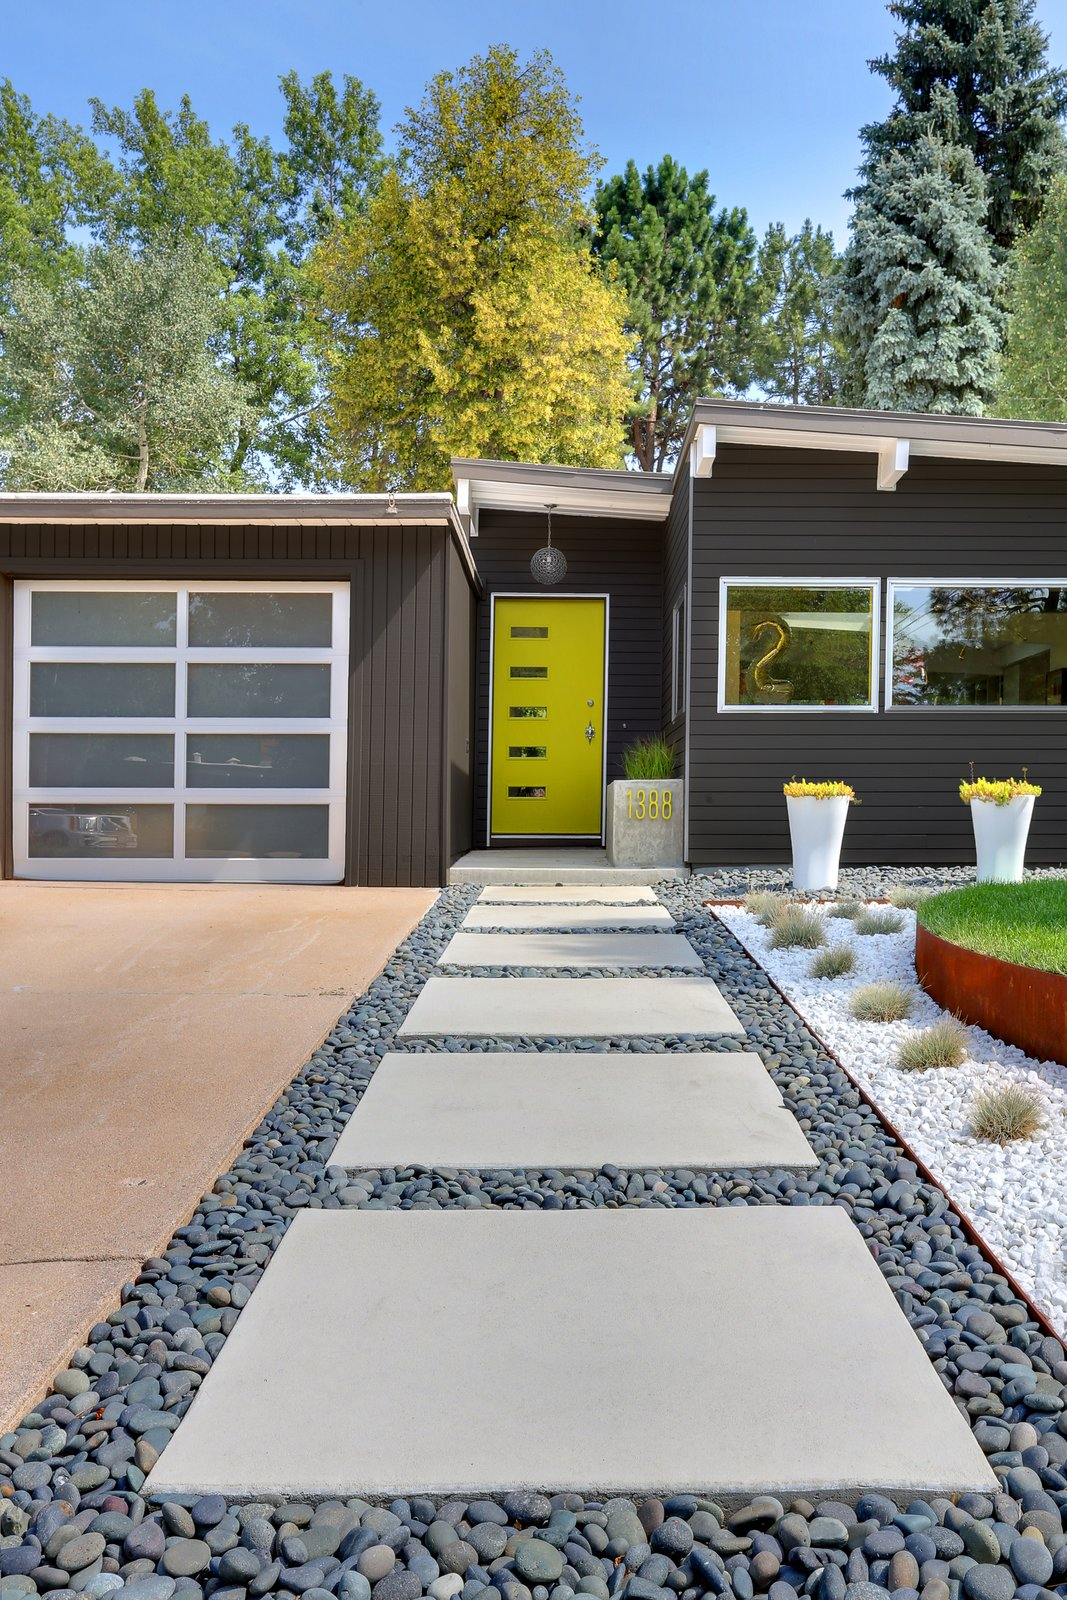 Generous concrete pavers lead to the entrance. The home's angles are typical of the midcentury homes in the neighborhood. Modern Homes in Colorado by Luke Hopping